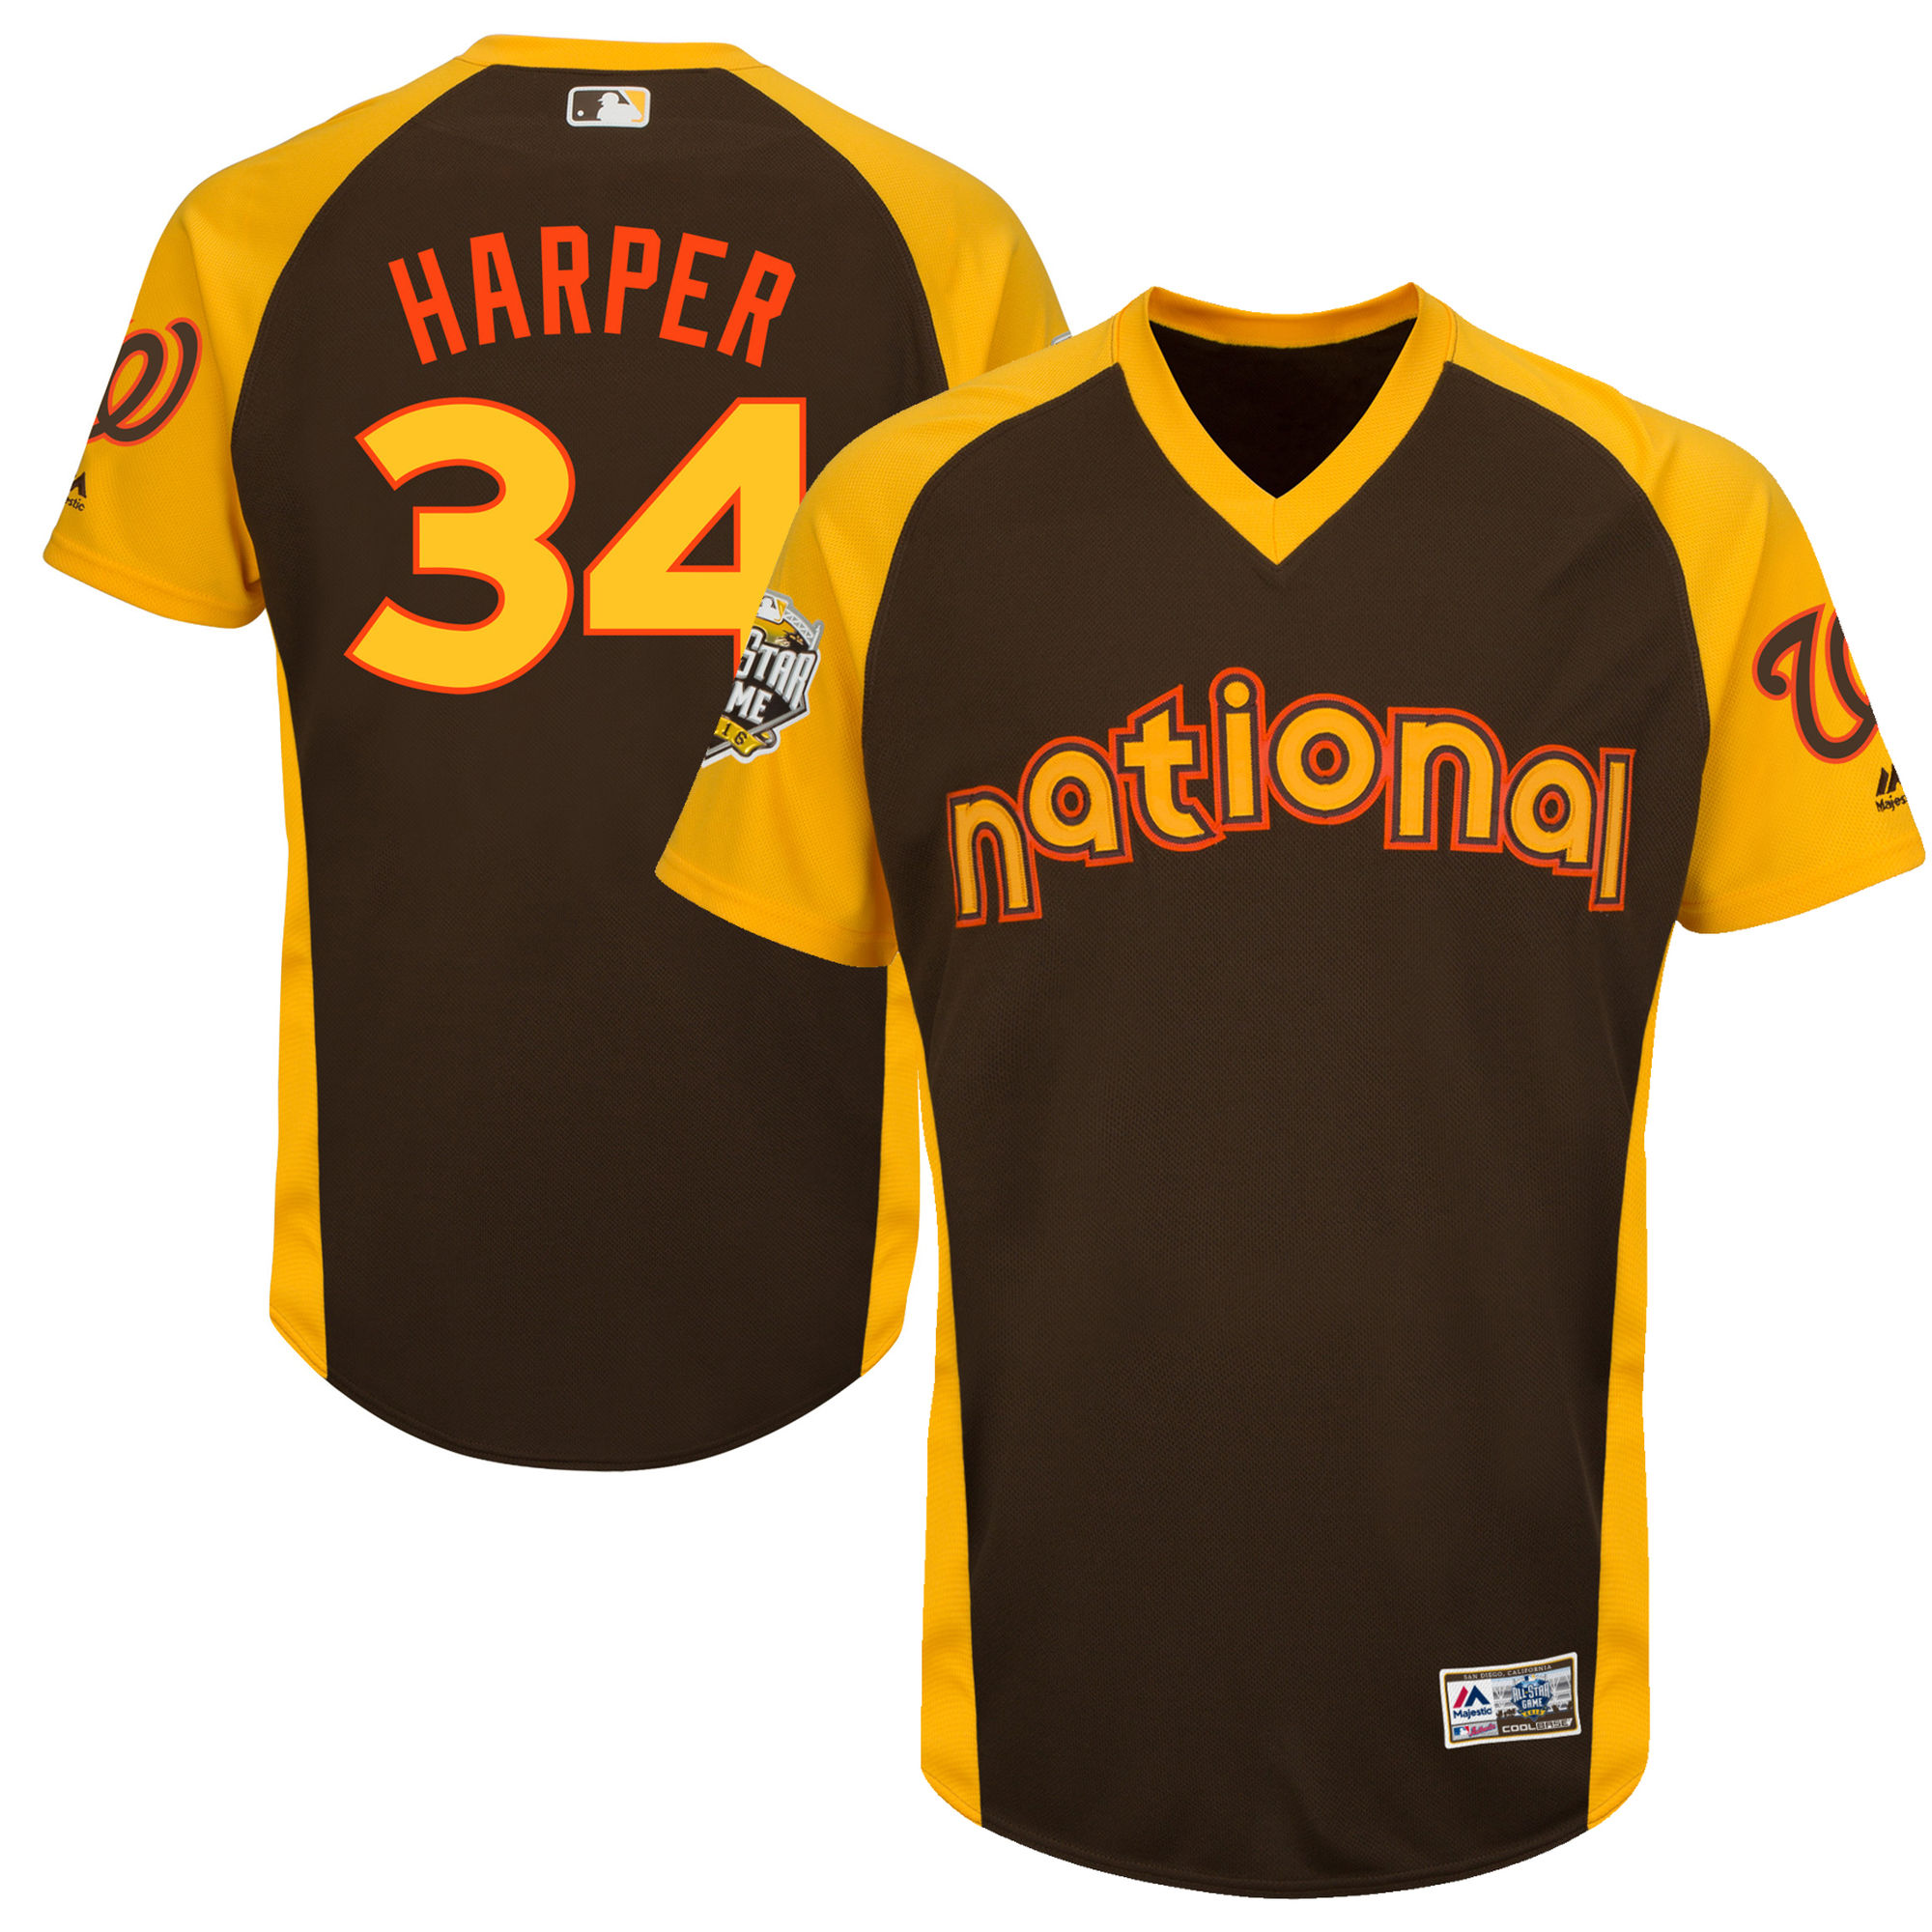 Nationals 34 Bryce Harper Brown Youth 2016 All-Star Game Cool Base Batting Practice Player Jersey